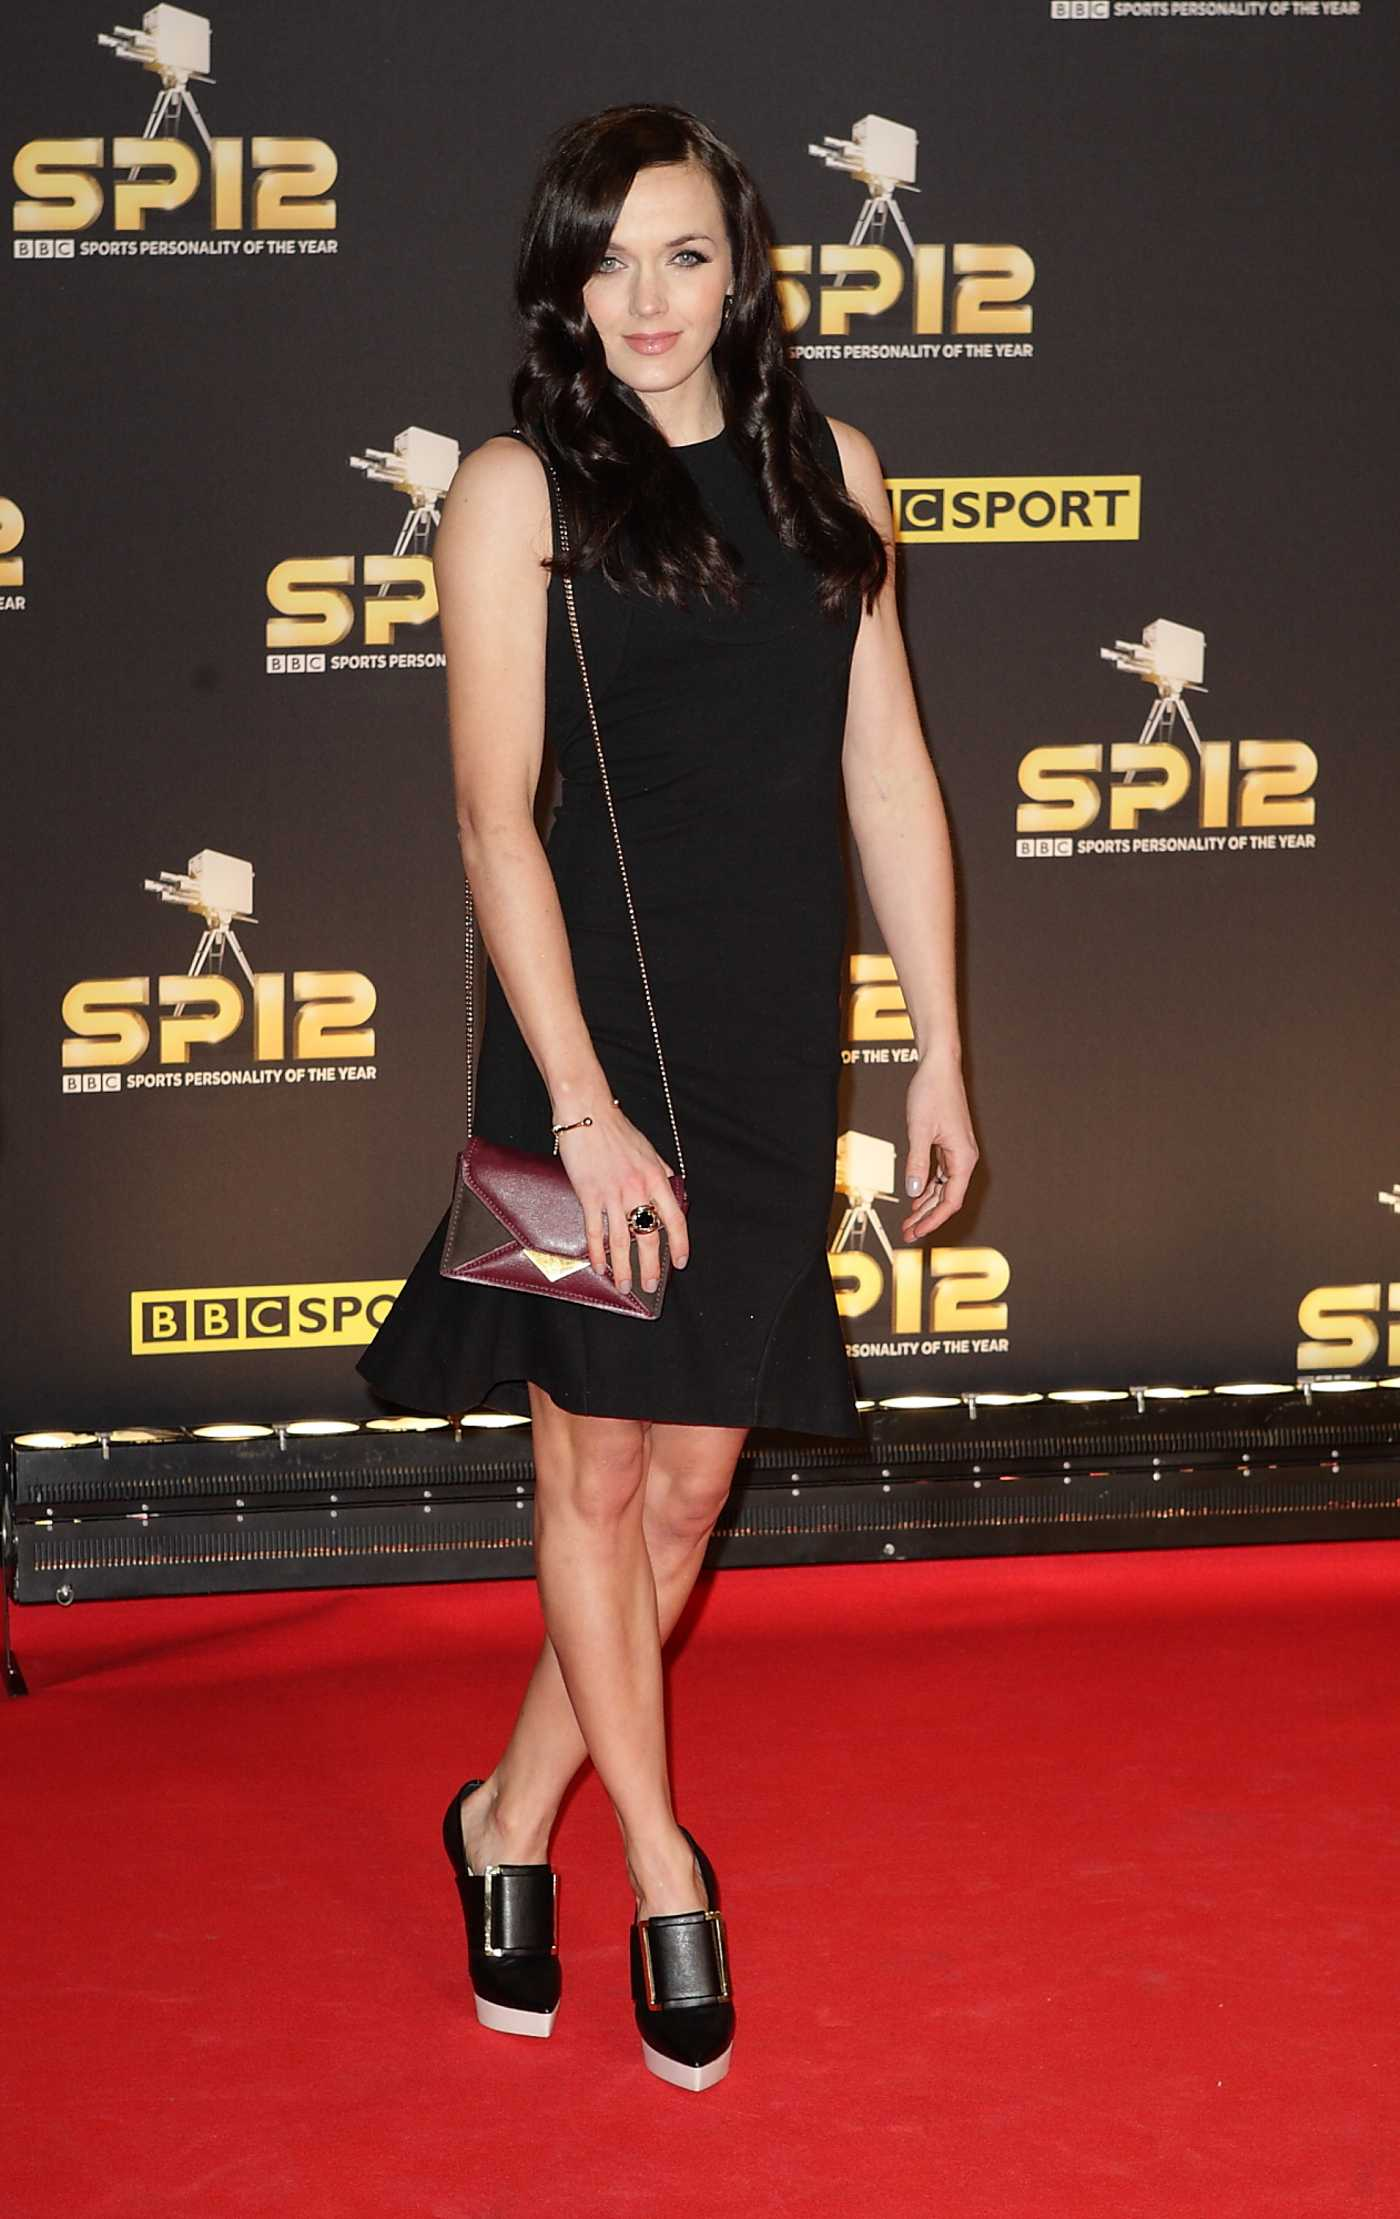 Victoria Pendleton BBC Sports Personality of the Year Award Ceremony